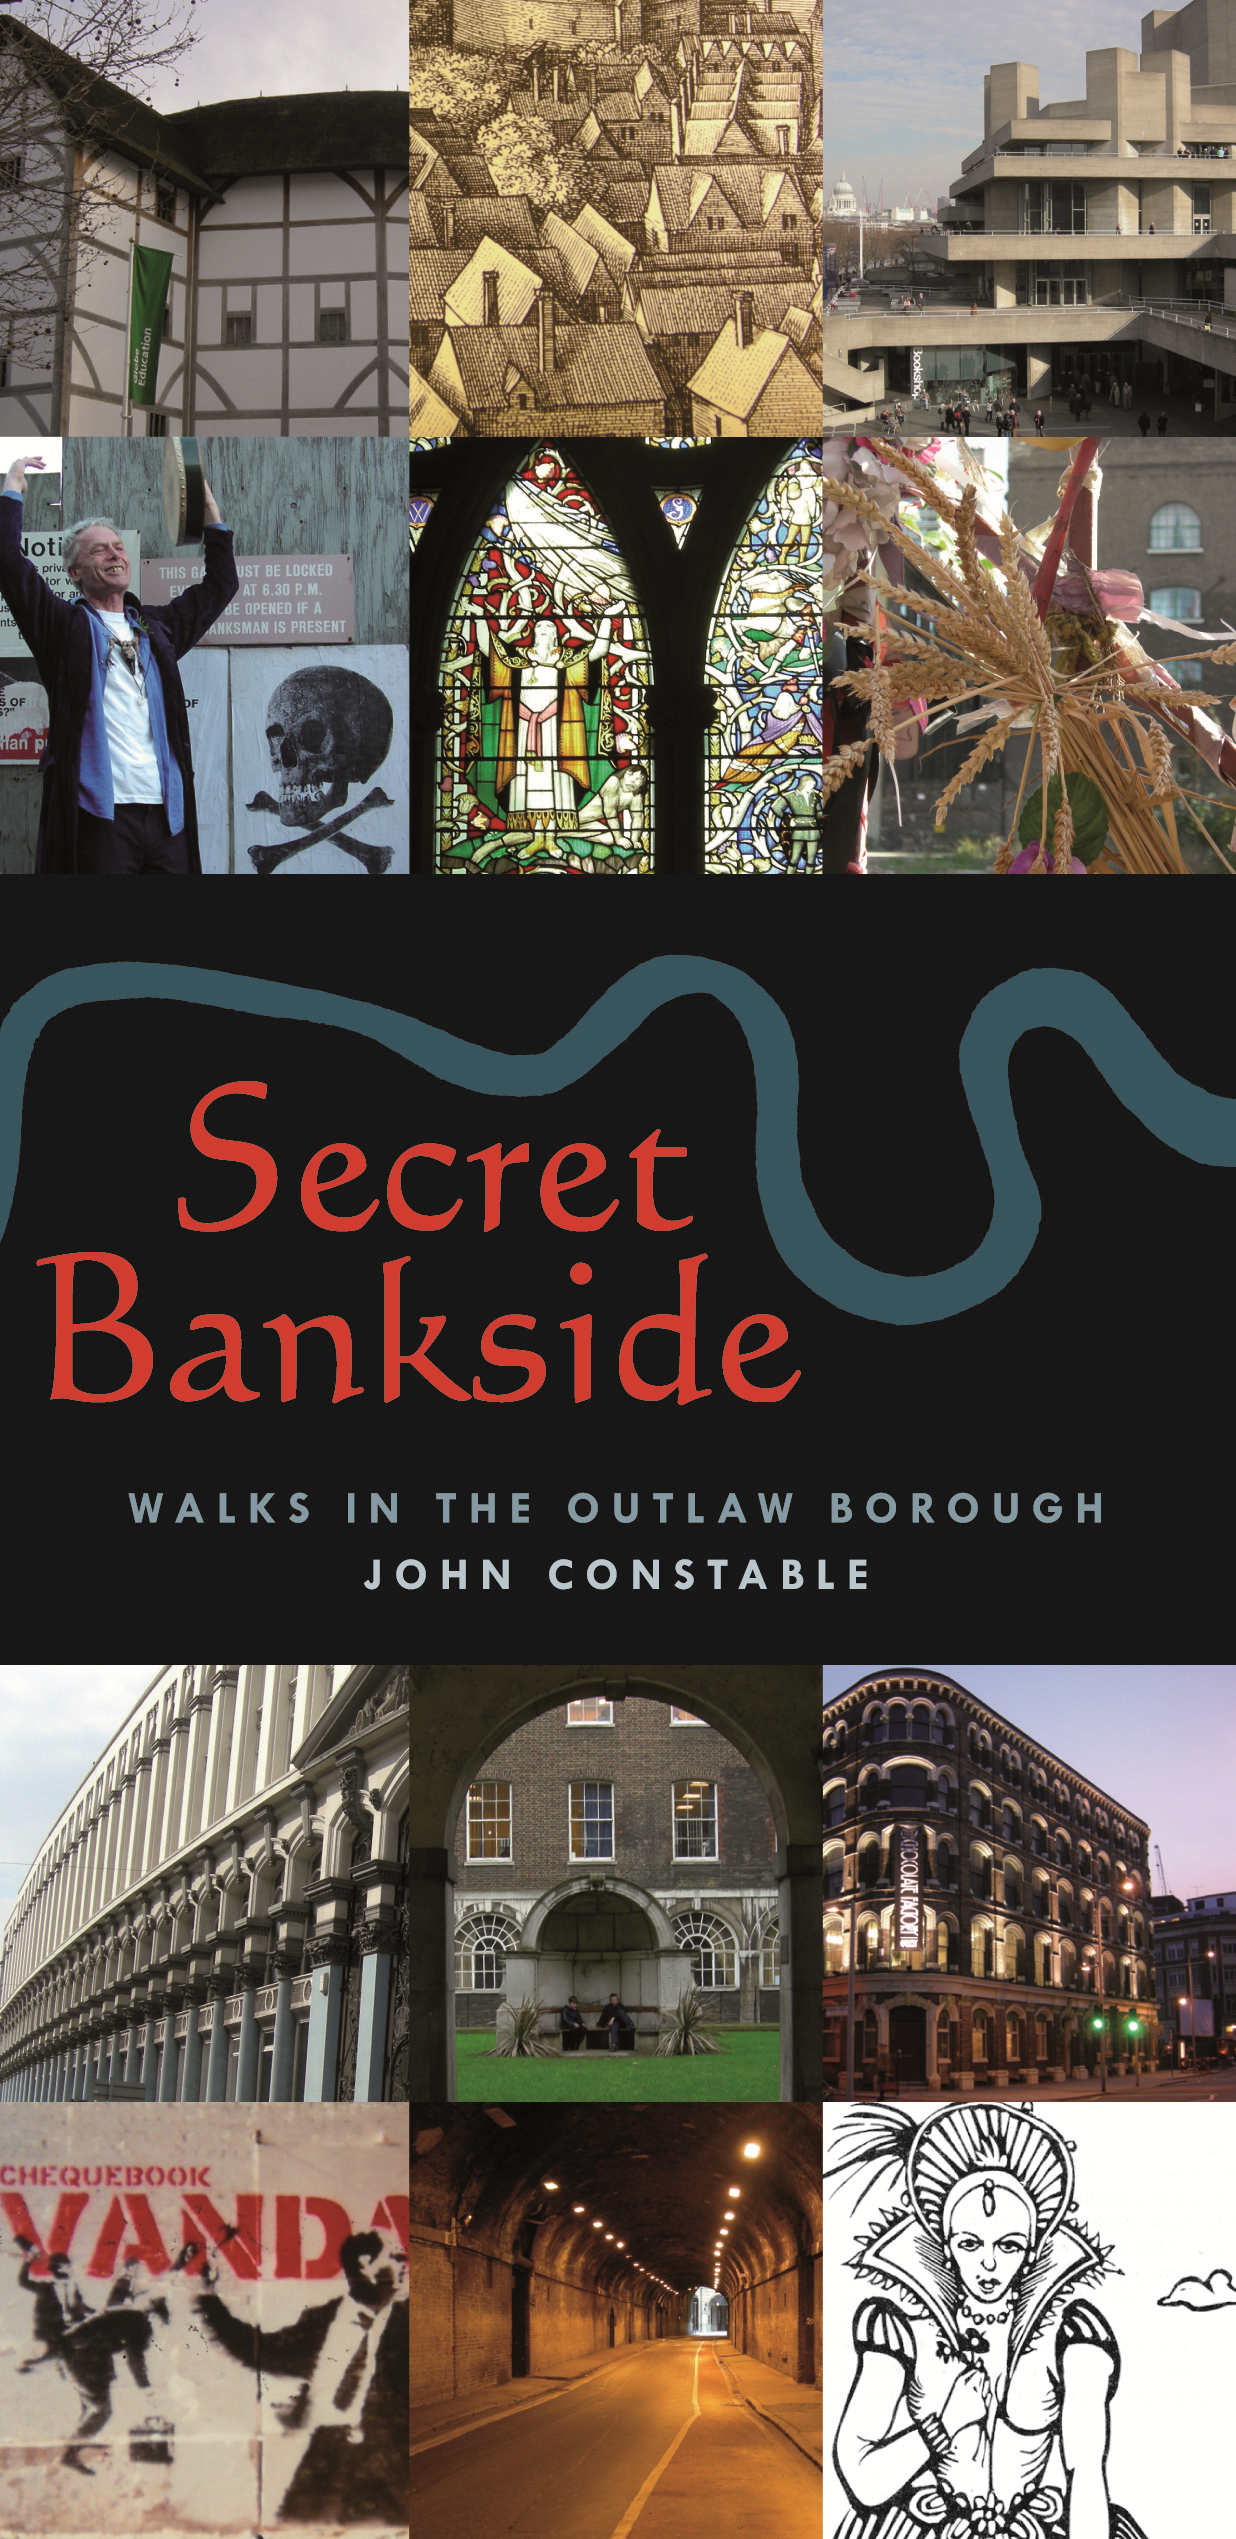 Secret Bankside: Walks in the Outlaw Borough